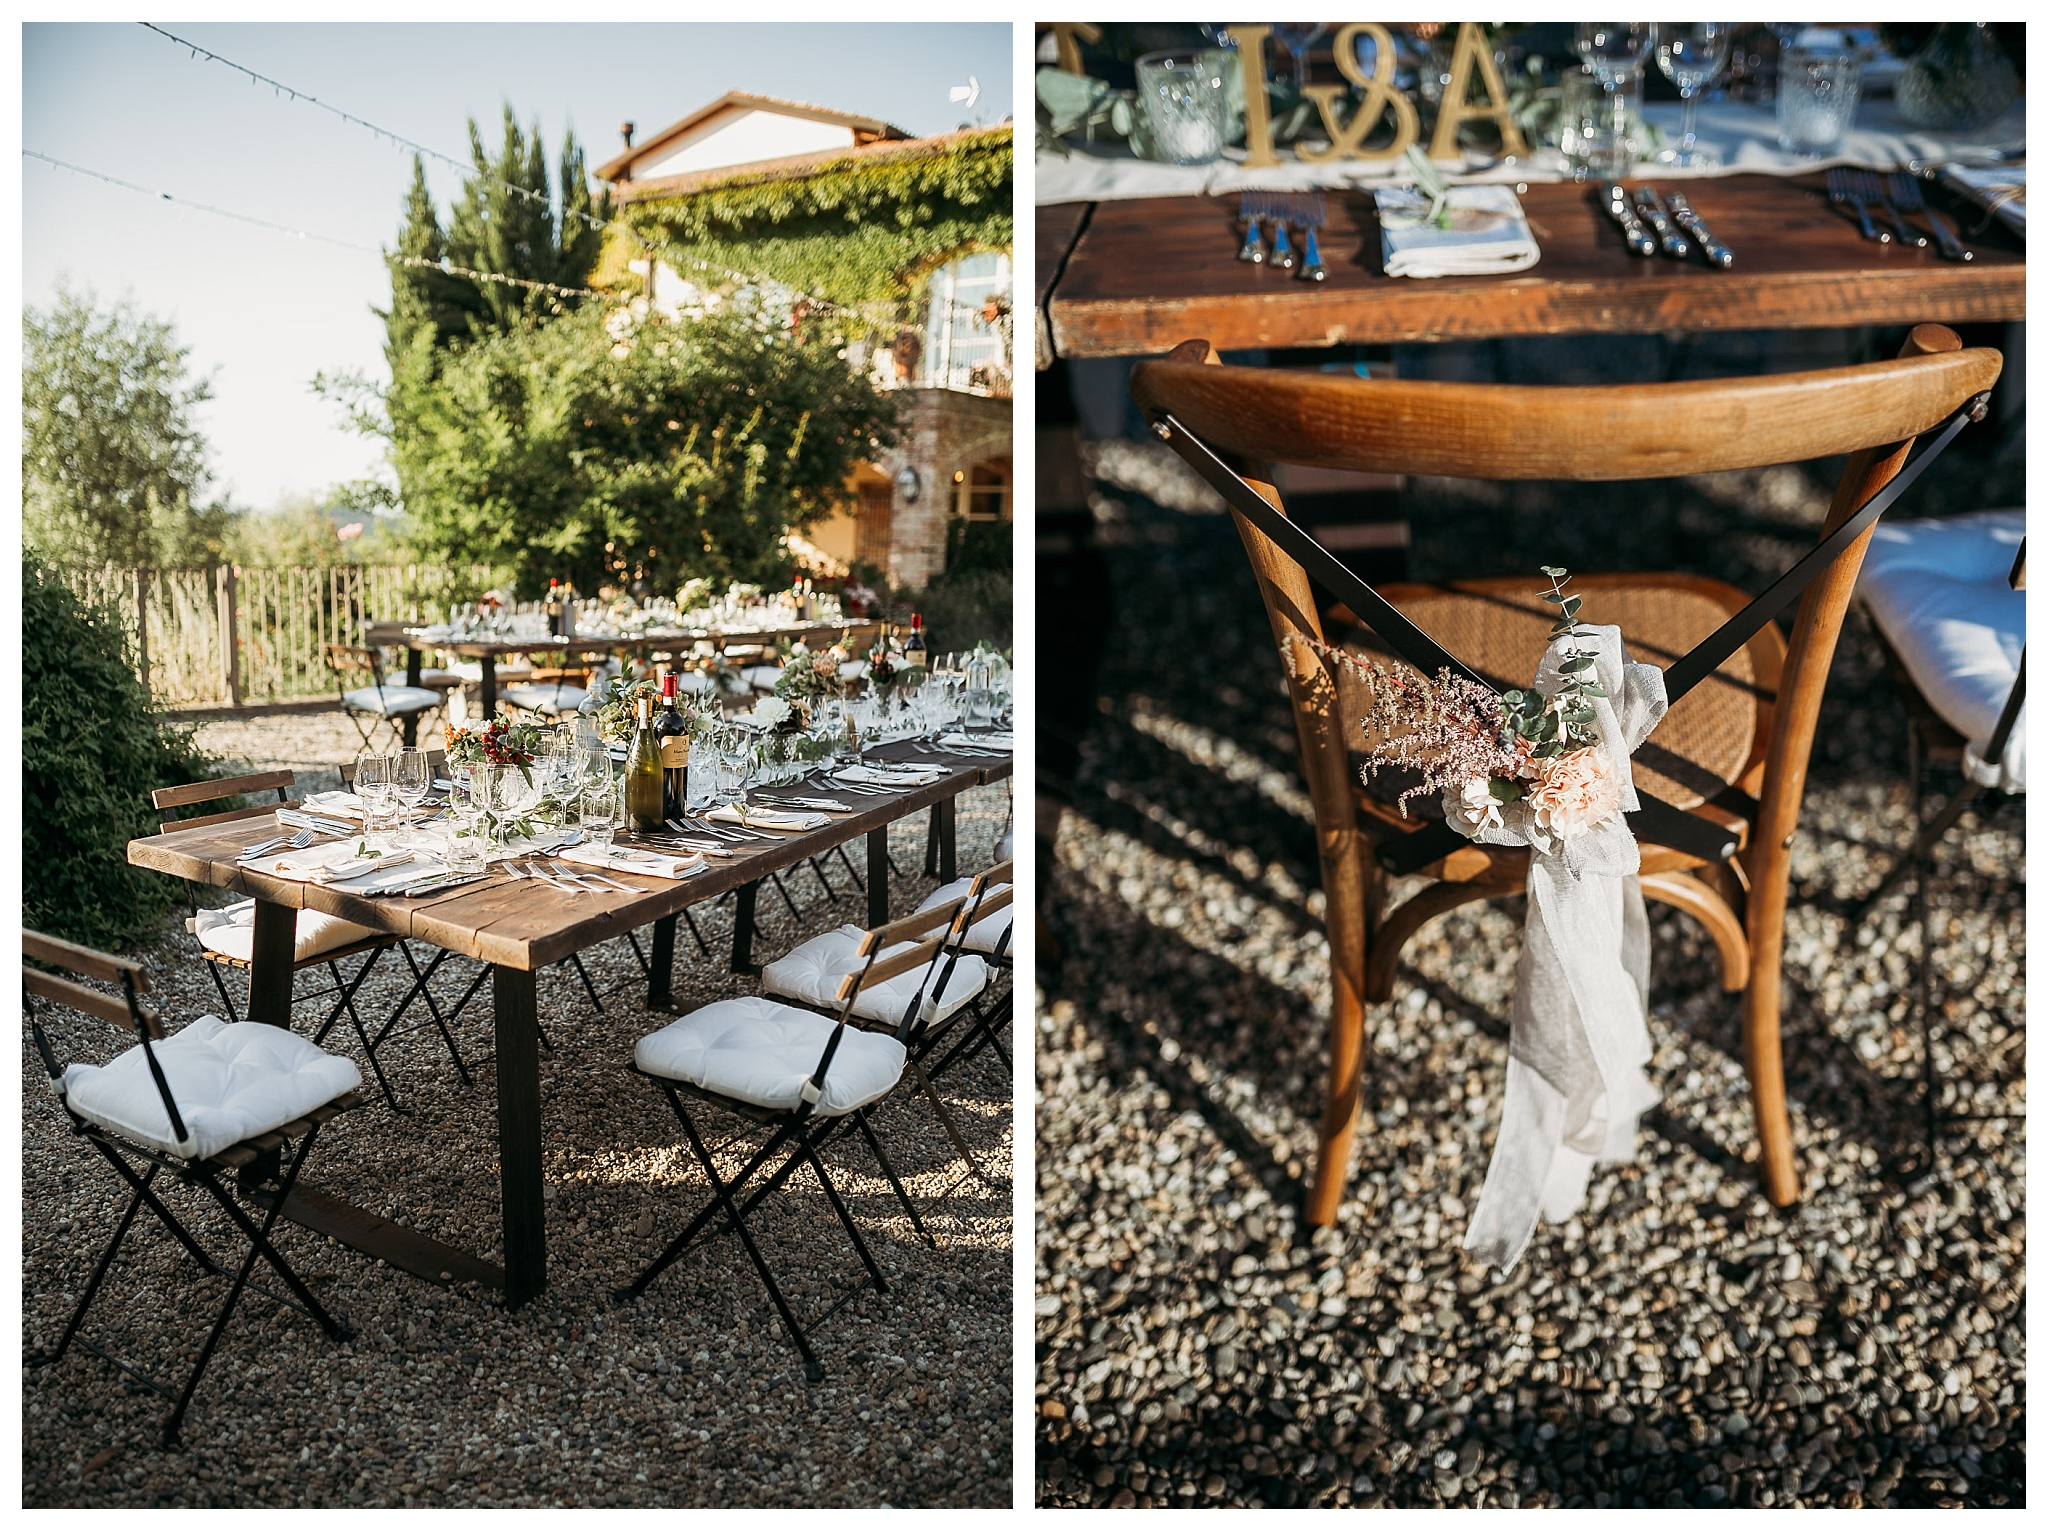 Rustic wooden table setting at La Villa Hotel in Italy